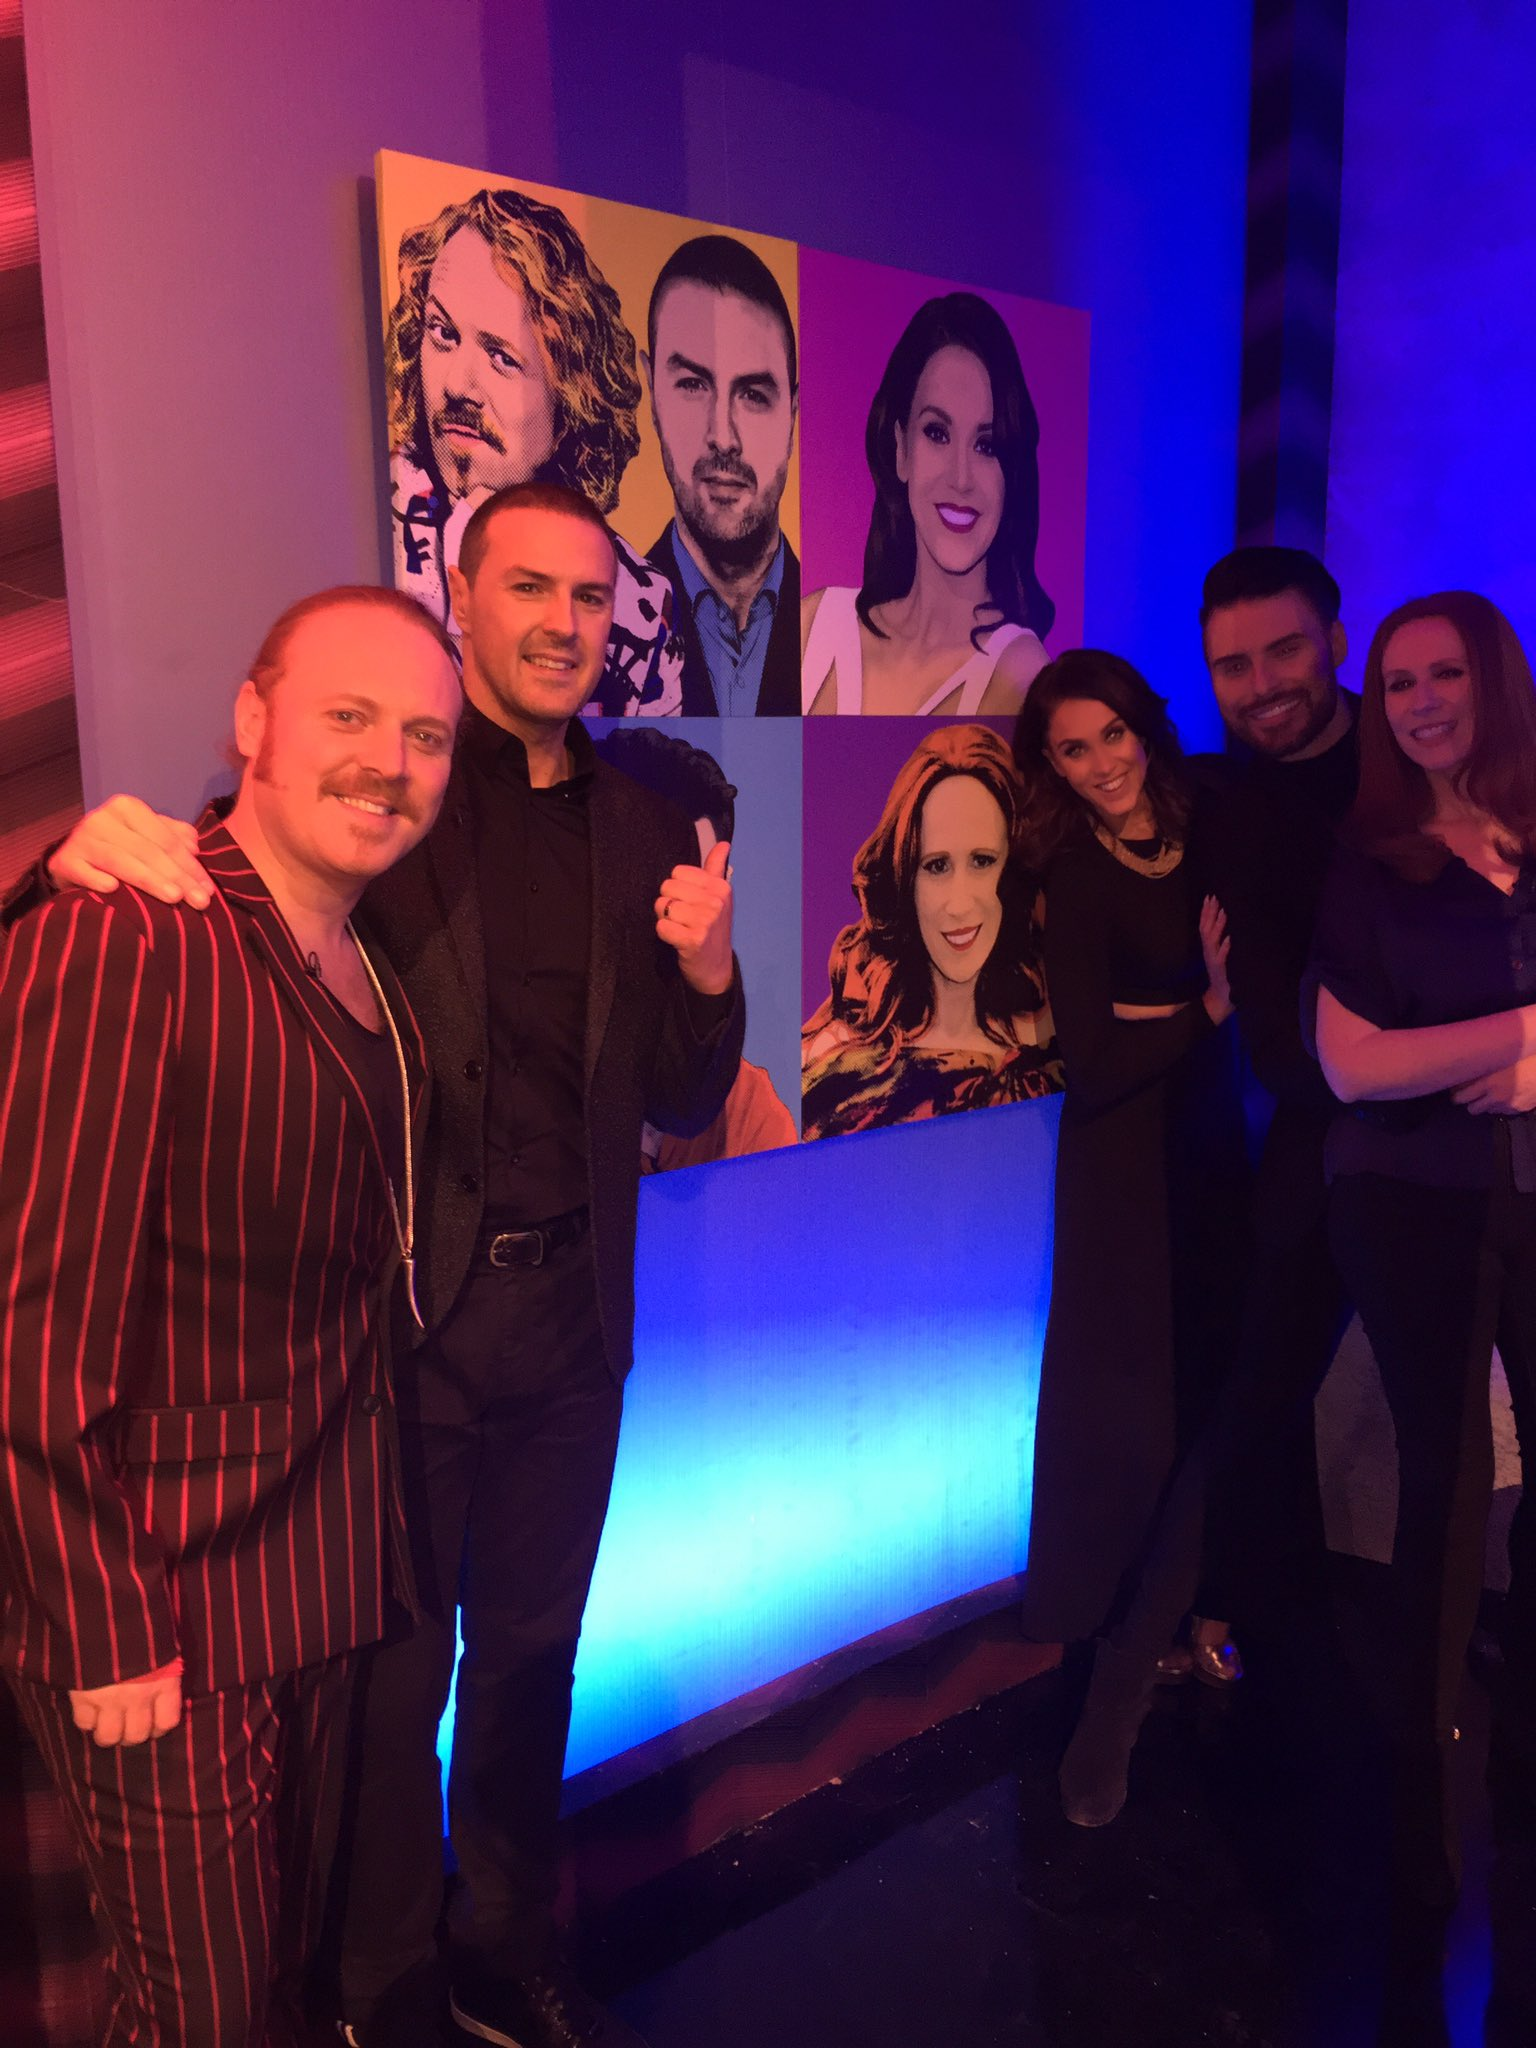 Amazing night filming tonight with this hilarious lot... @lemontwittor @PaddyMcGuinness @Rylan and #CatherineTate 💜 https://t.co/hojjTOFLAG